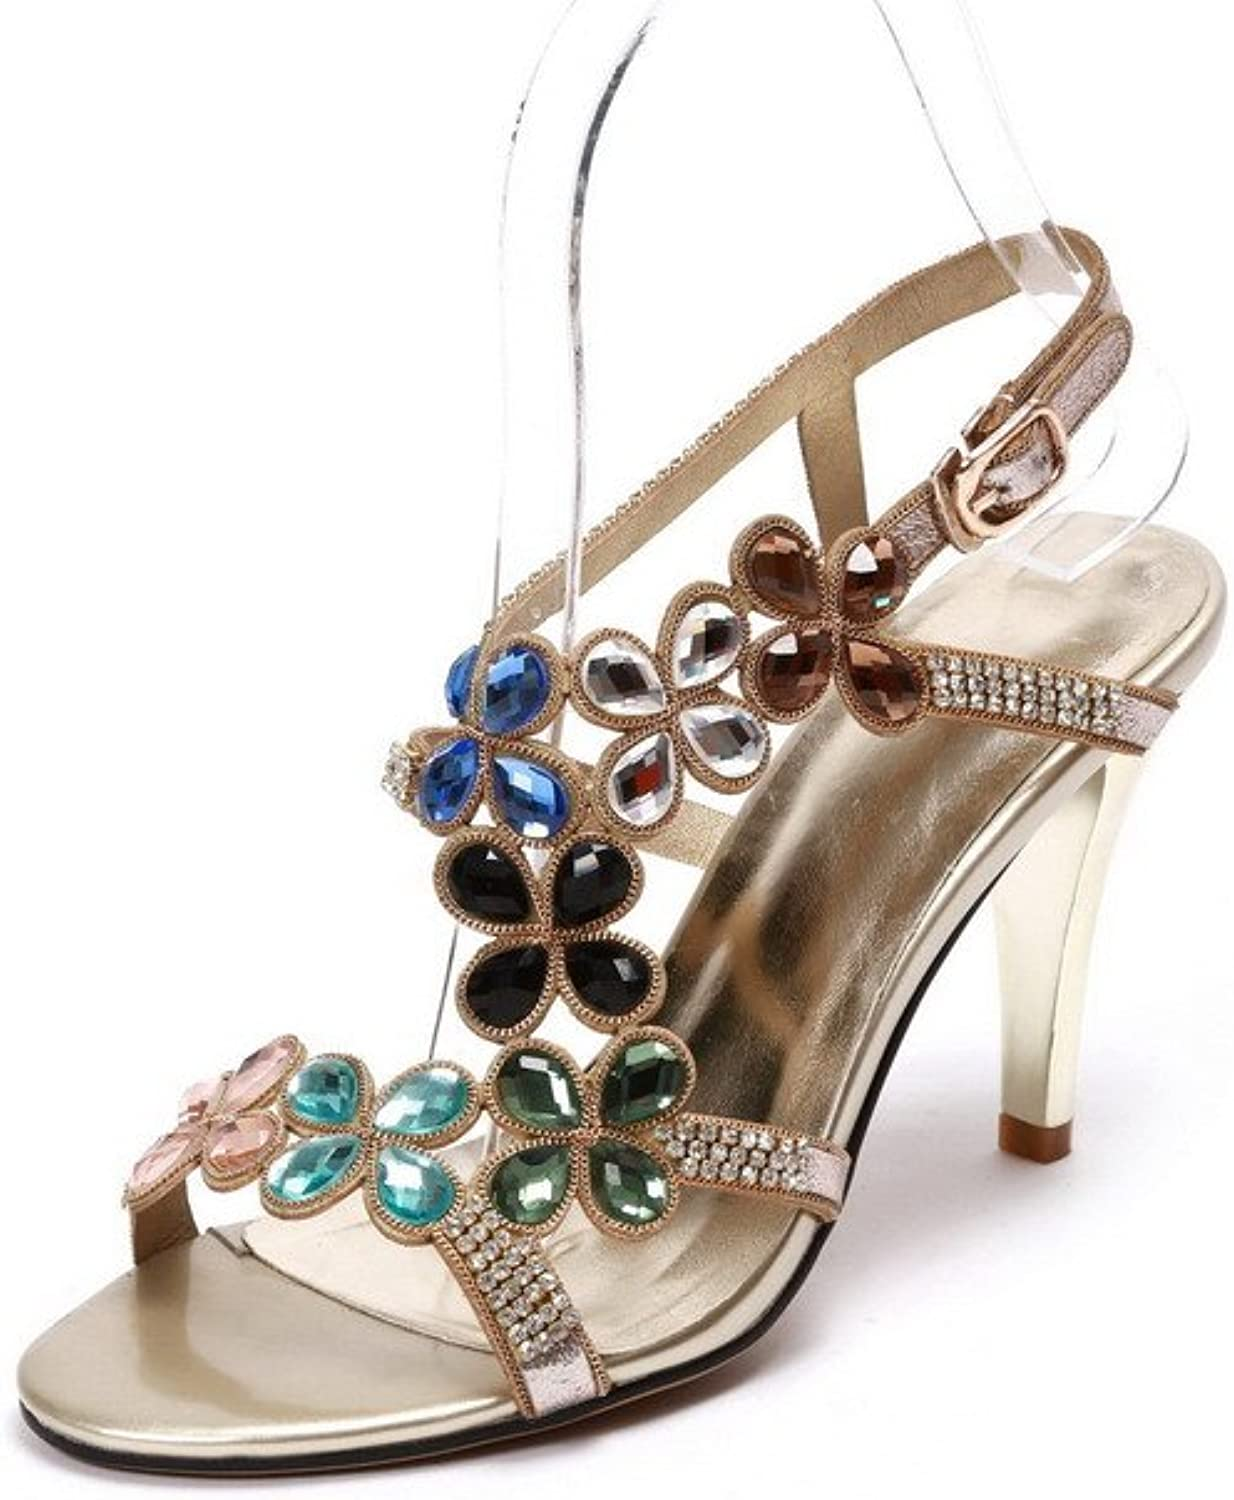 WeenFashion Women's Pu High-Heels Open-Toe Sandals with Studded Rhinestones and Glass Diamond